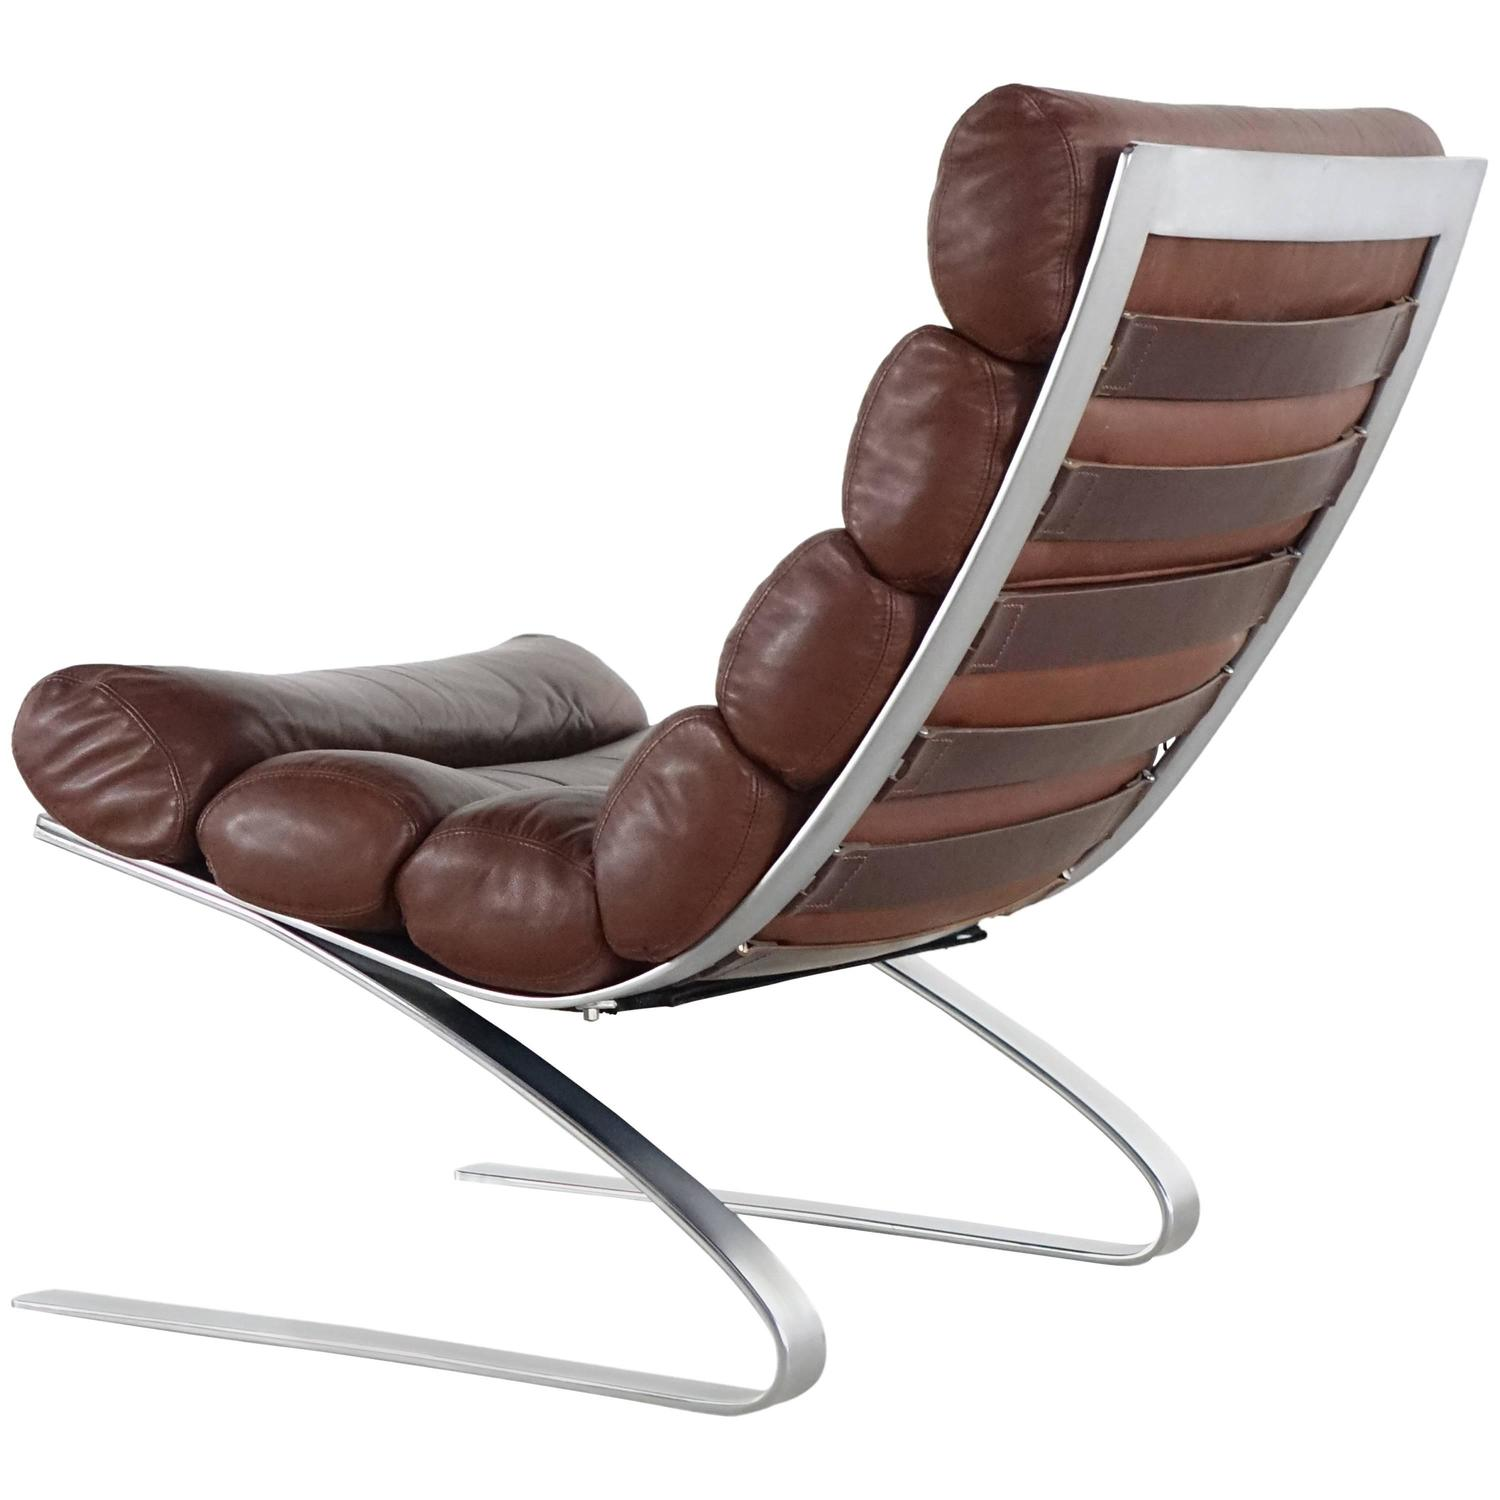 COR Sinus Easychair Lounge Chair 1976 by Reinhold Adolf in